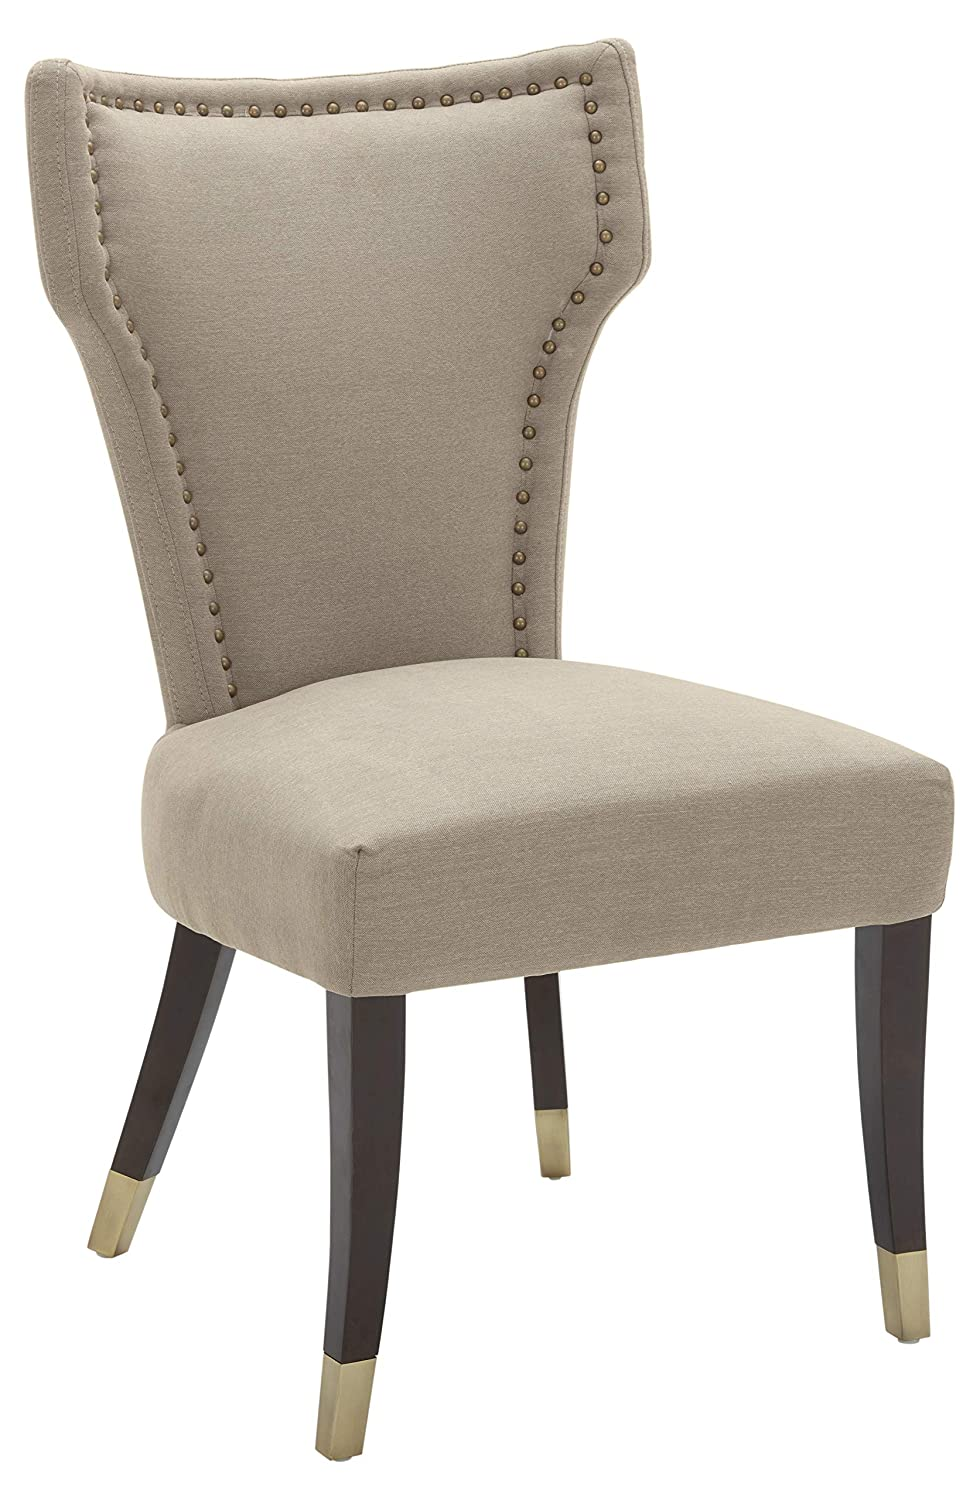 Stone Beam Dining Chair with Brushed-Brass Nailhead Trim, 39 H, Fawn Pack of 2